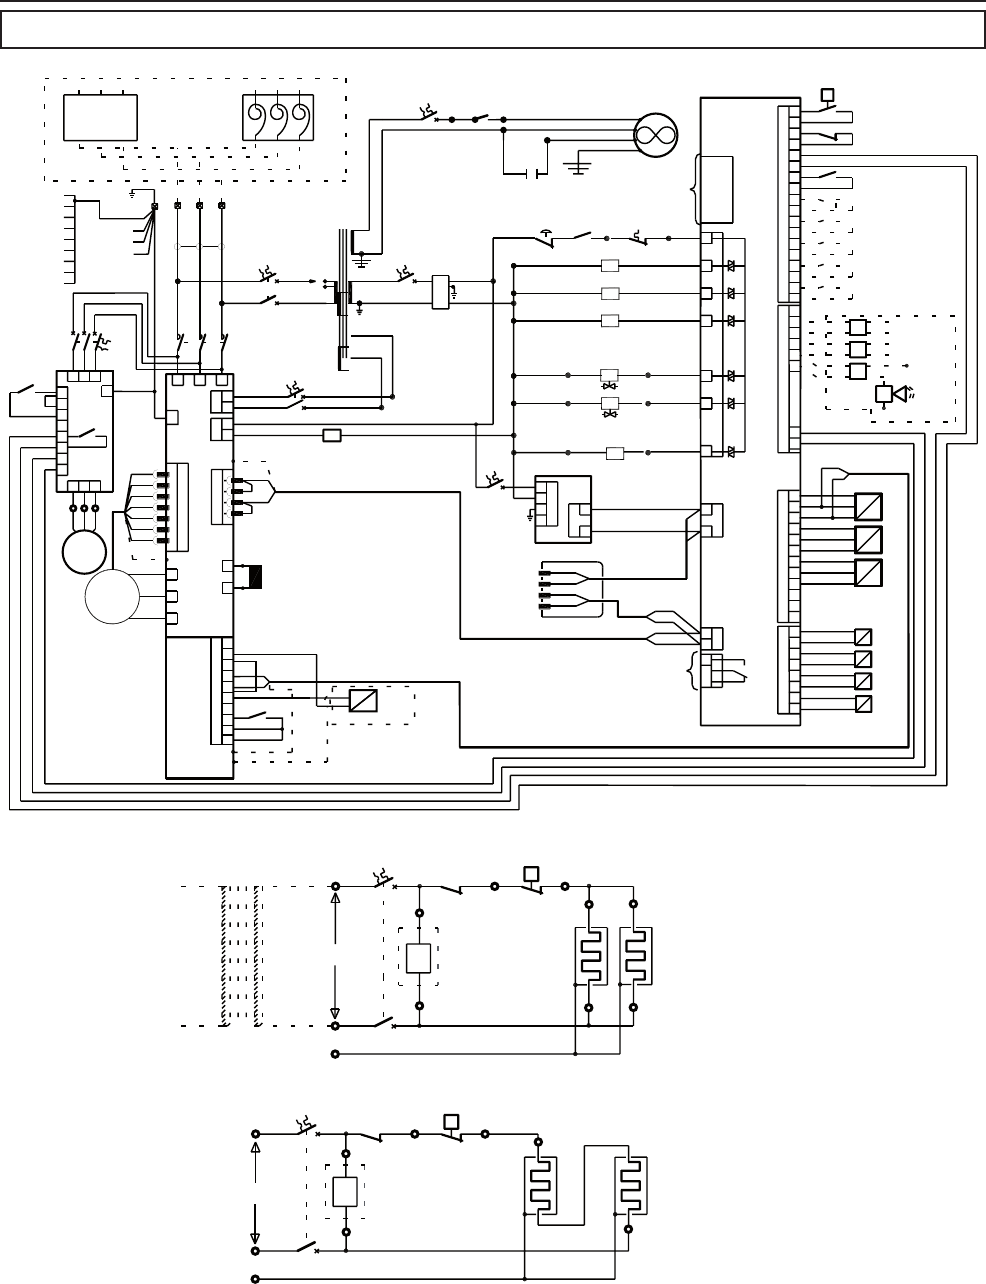 09348767 19eb 4440 9350 a94ca31df7f5 bg34 page 52 of ingersoll rand air compressor irn50 200h cc user guide husky air compressor wiring diagram at edmiracle.co